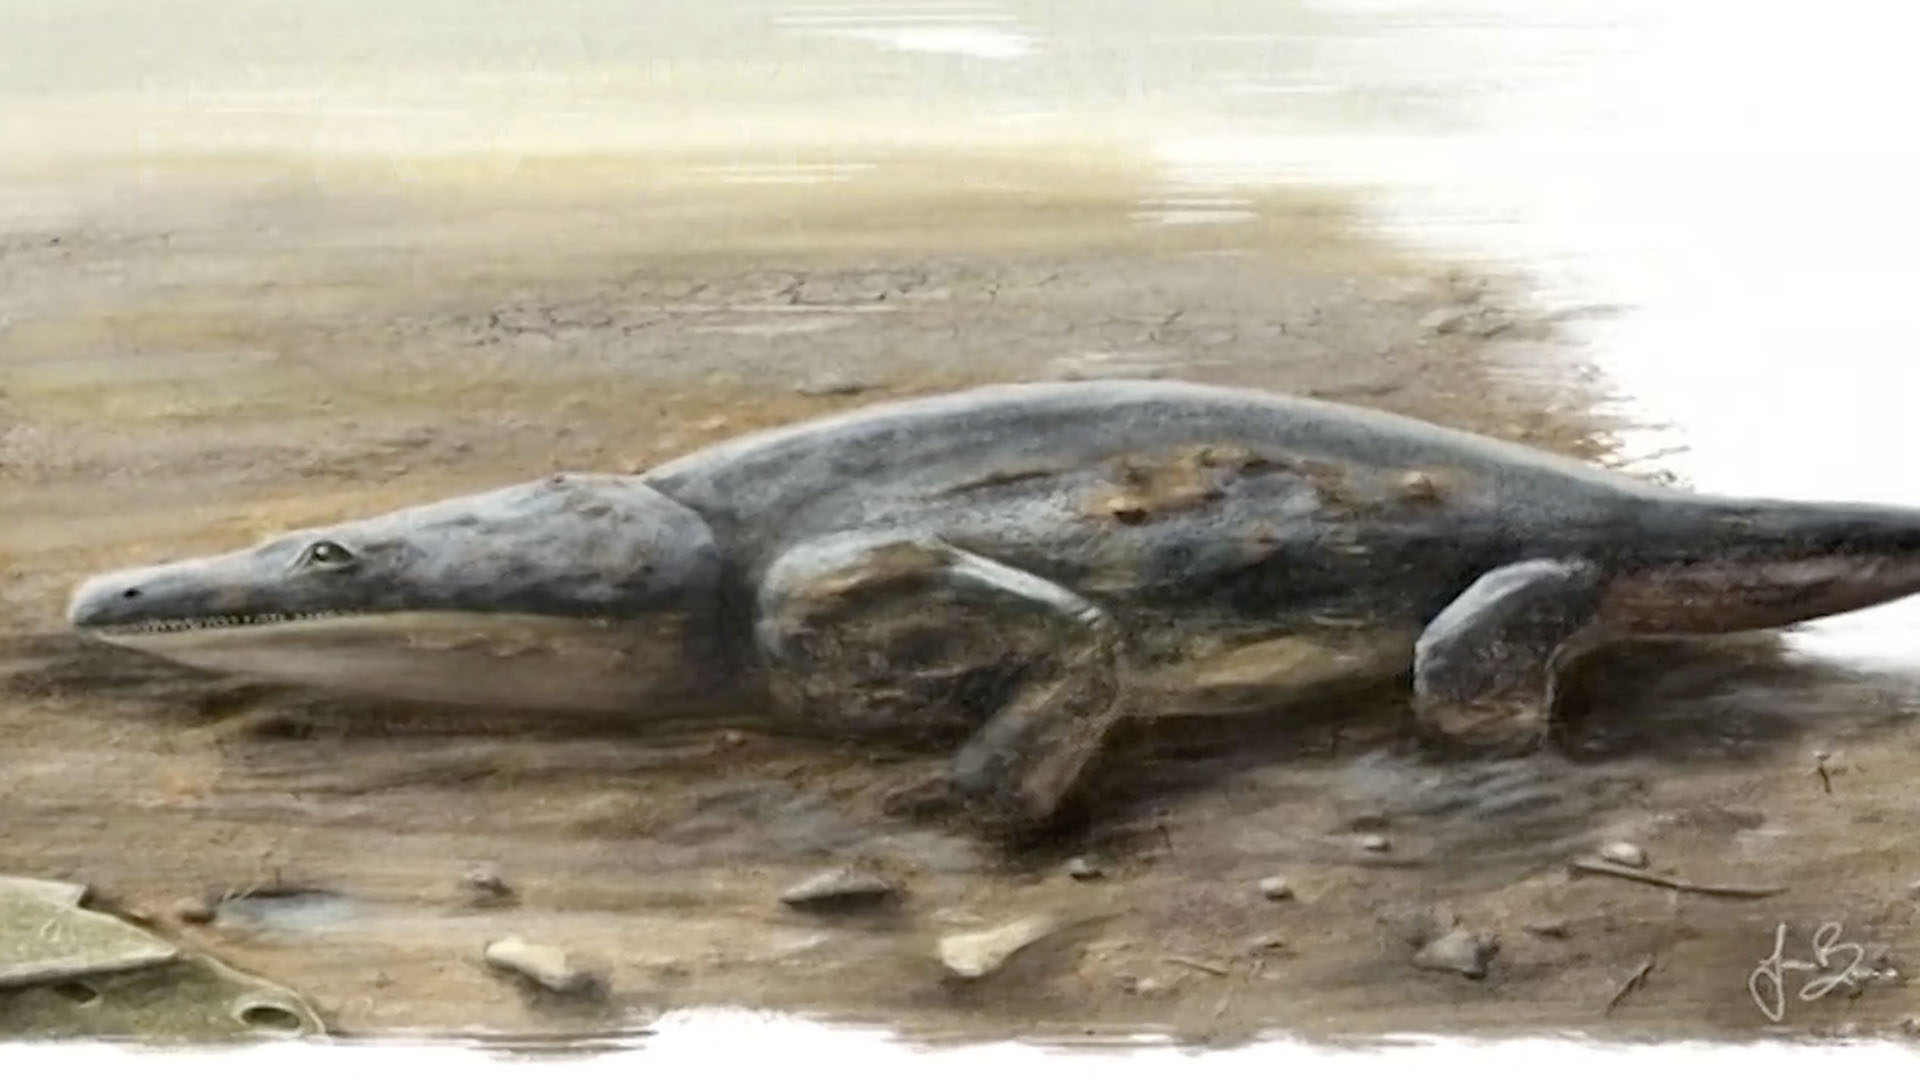 Fossilized Remains of World's Oldest Sea Turtle Discovered